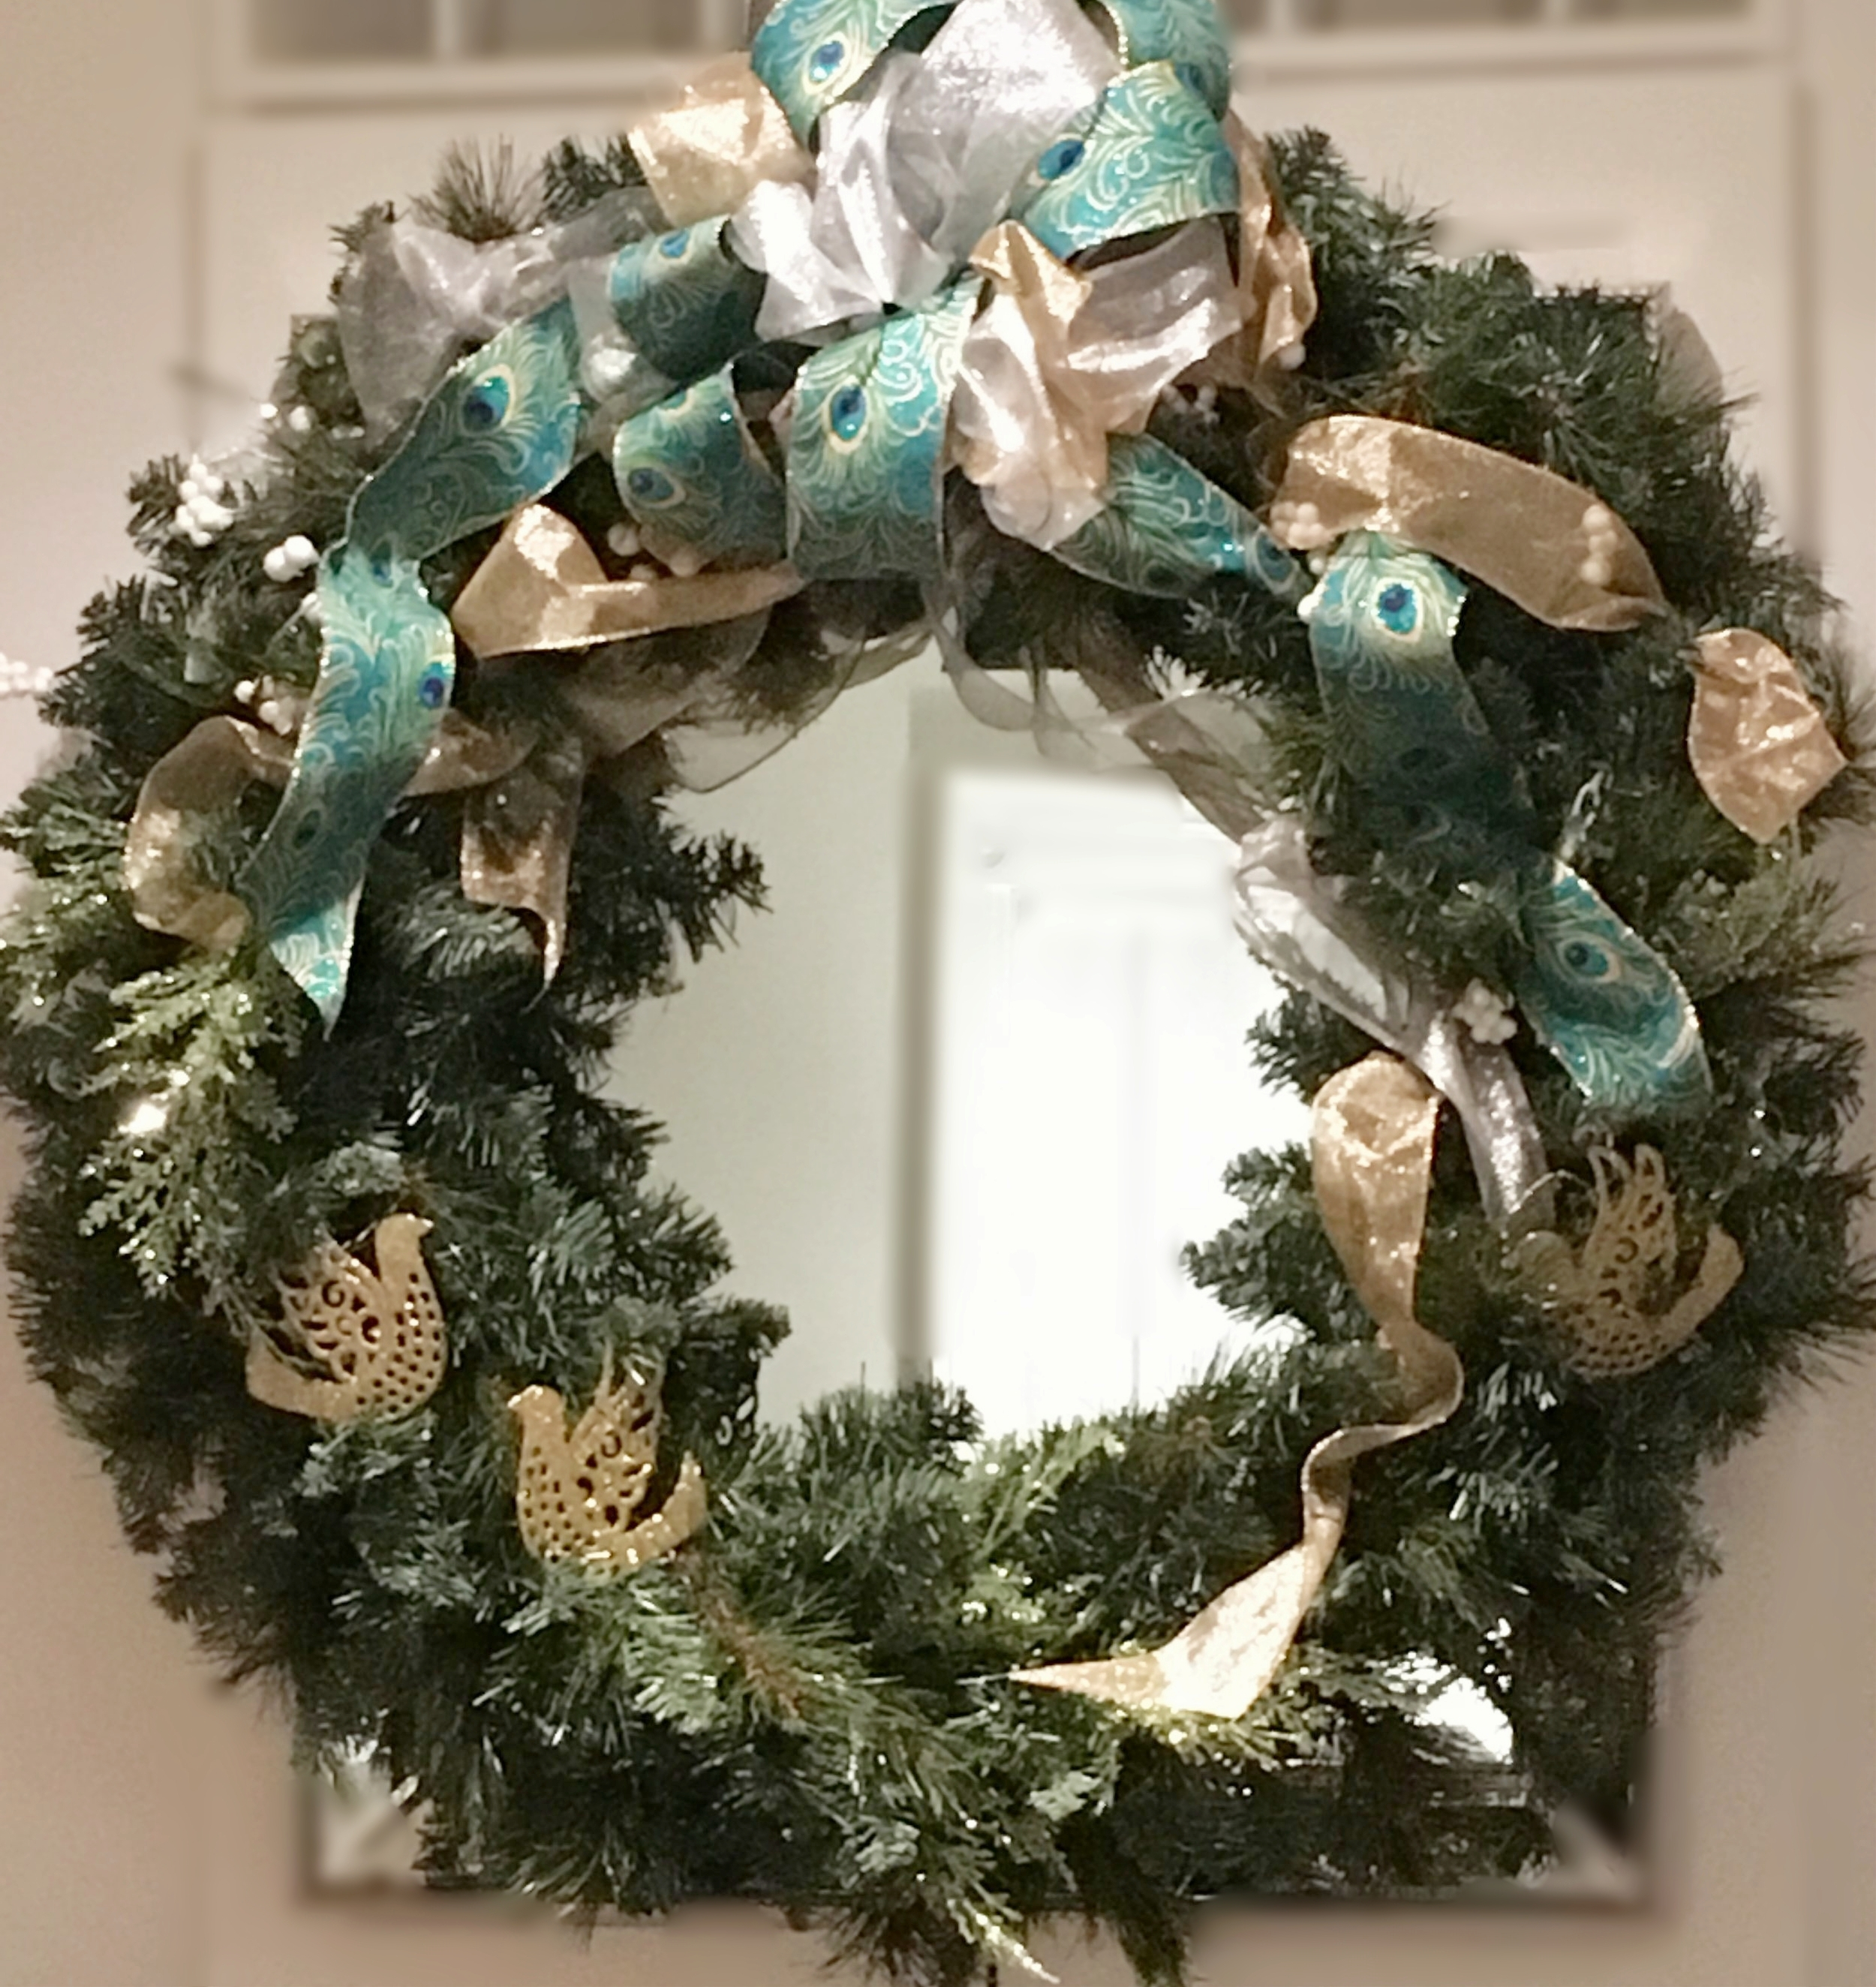 A coordinating wreath over the living room fireplace